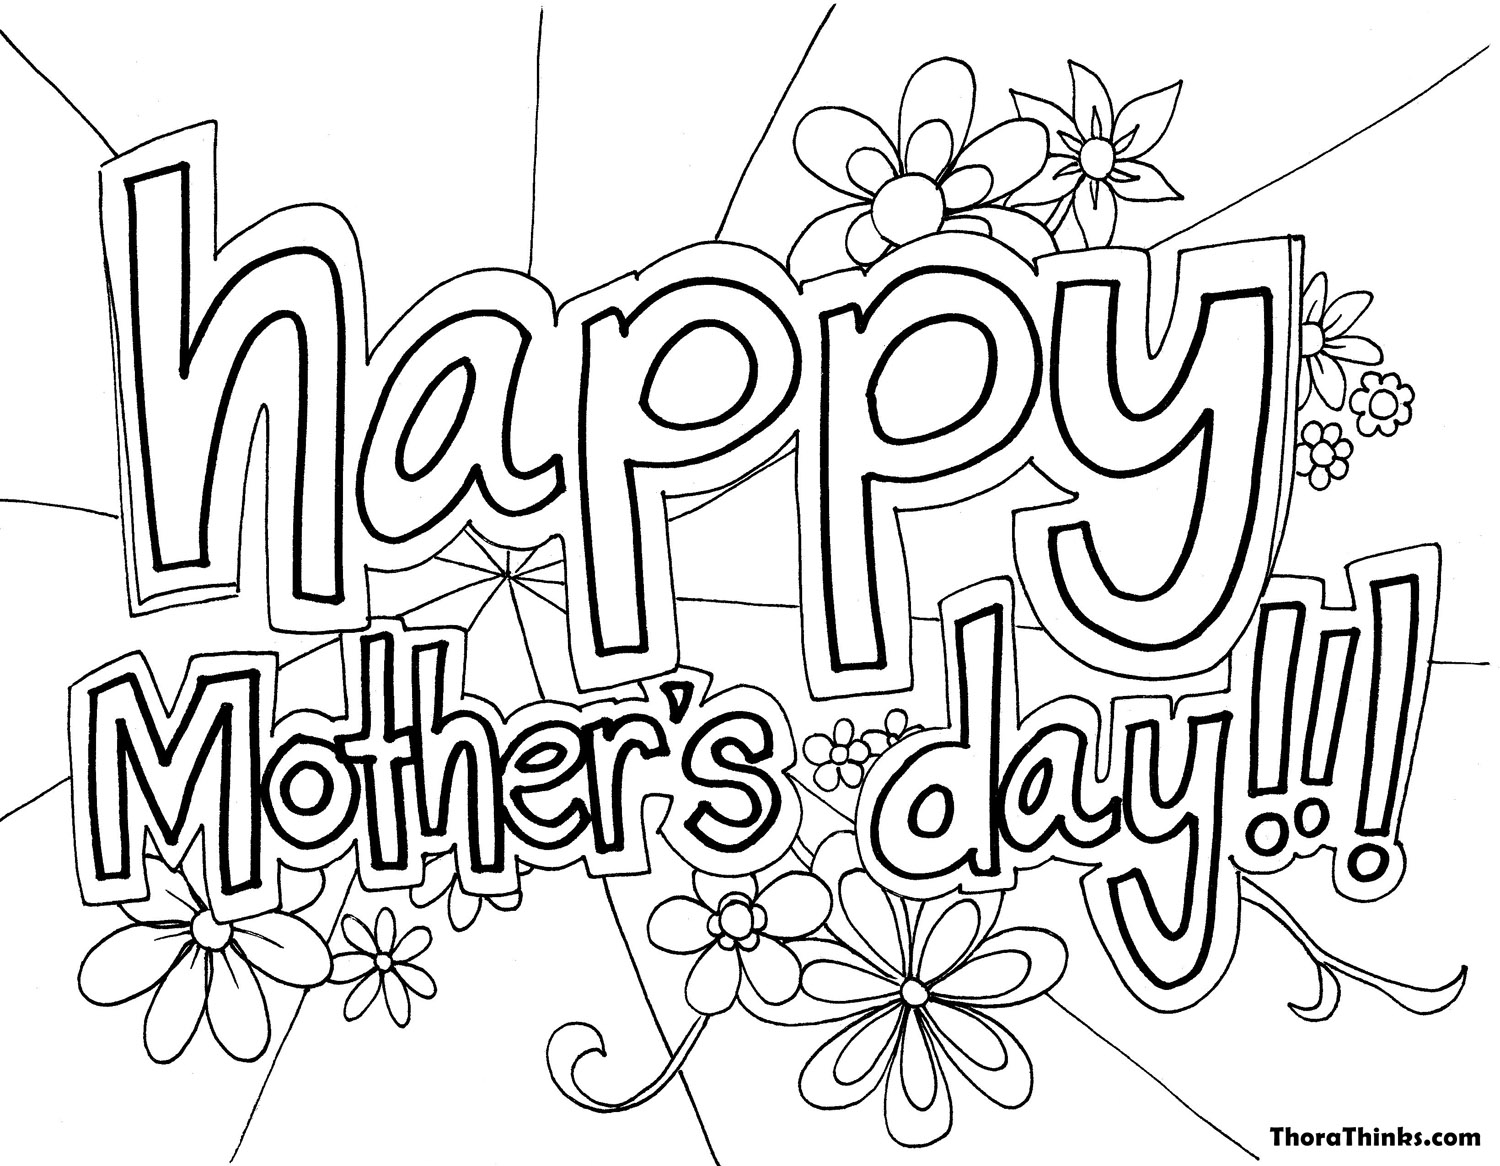 Mothers Day Coloring Pages Kids Download 20l - Free Download